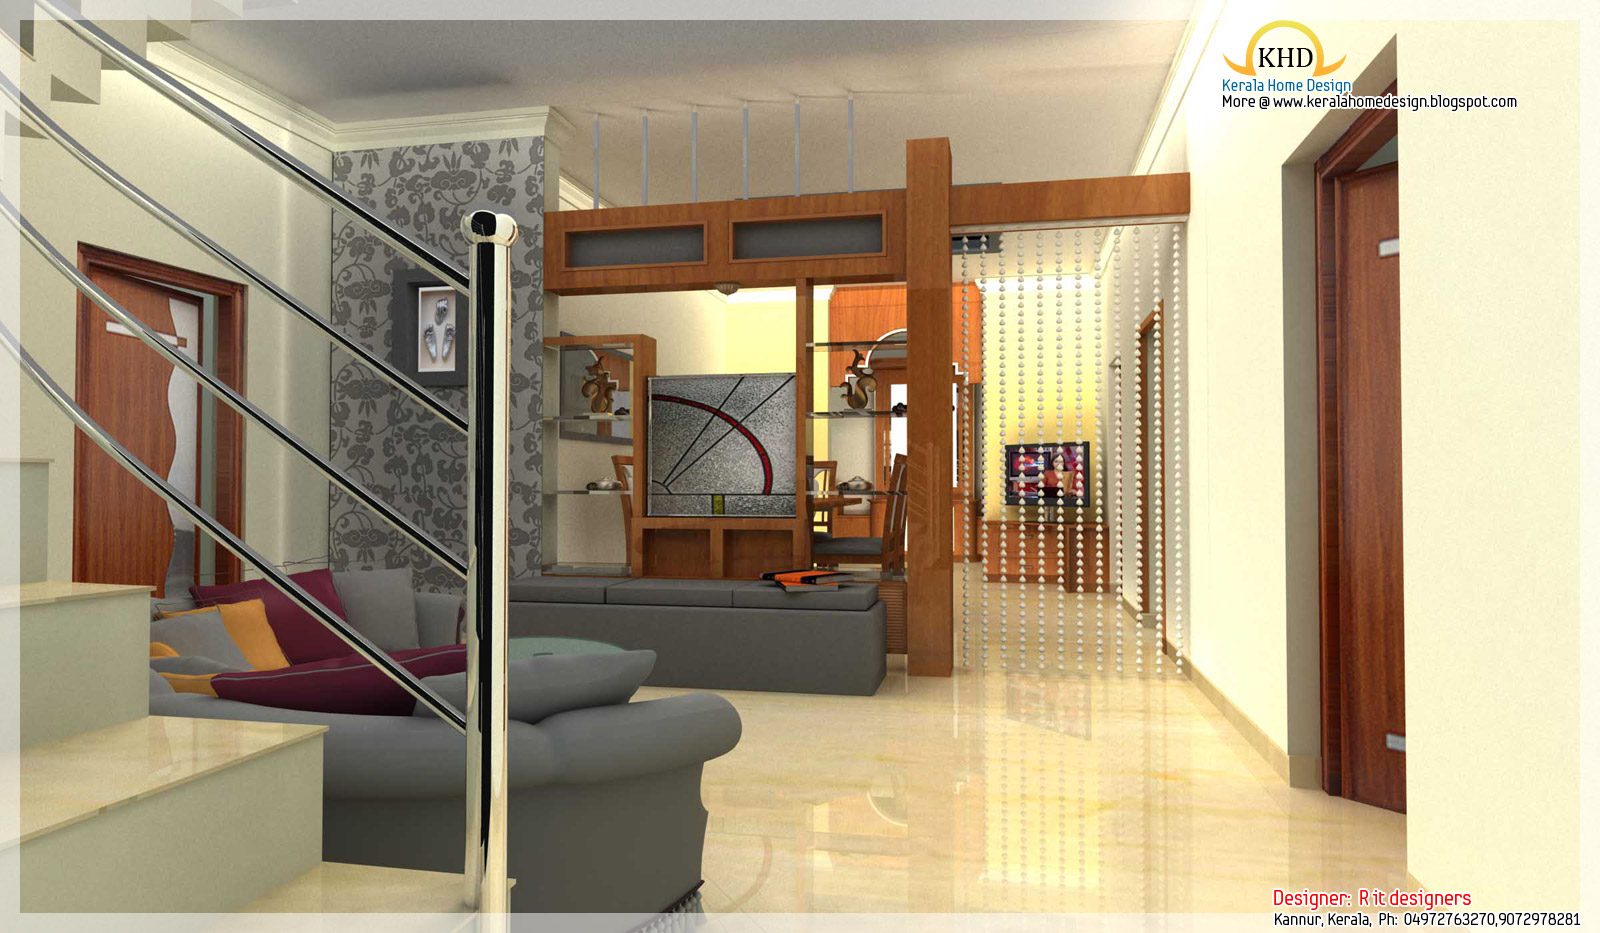 Interior Design Ideas For Small Indian Homes Interior Design Idea Renderings Kerala Home Design And